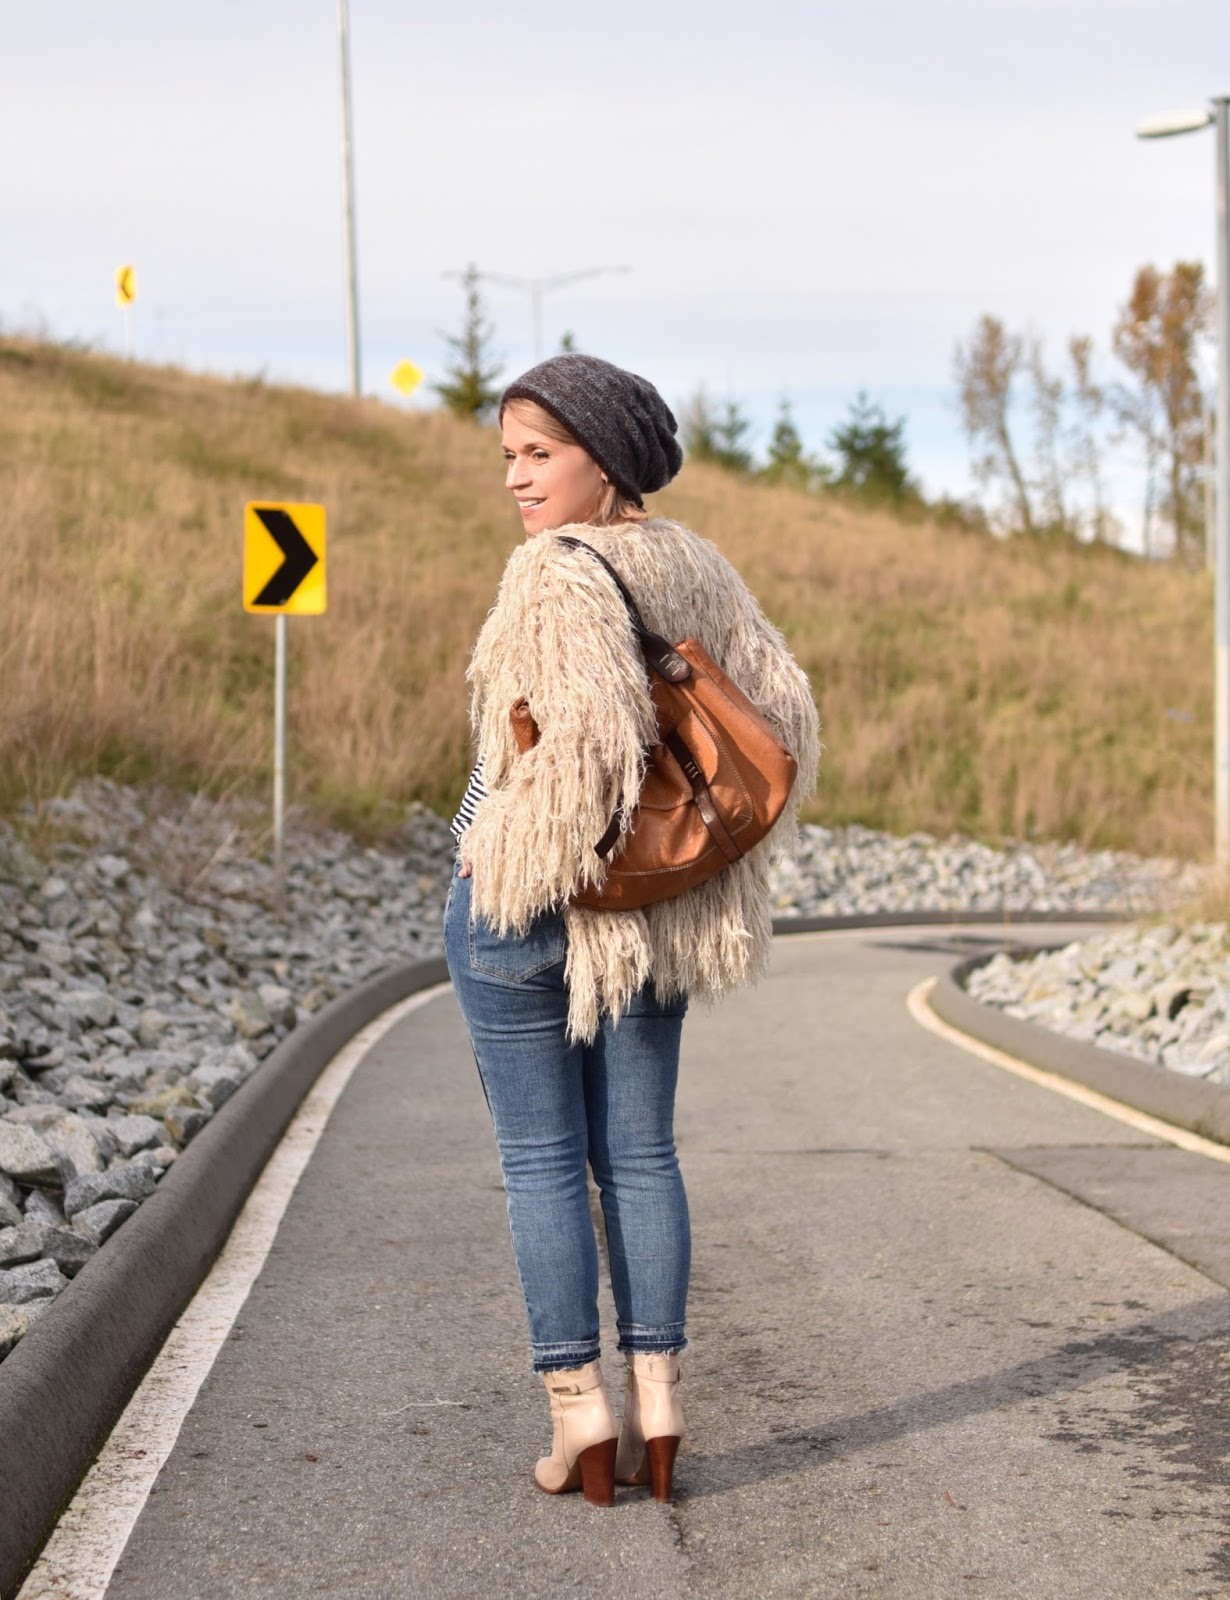 Outfit inspiration c/o Monika Faulkner - styling a shaggy cardigan with a striped tee, patchwork skinnies, ivory booties, and a woolen beanie